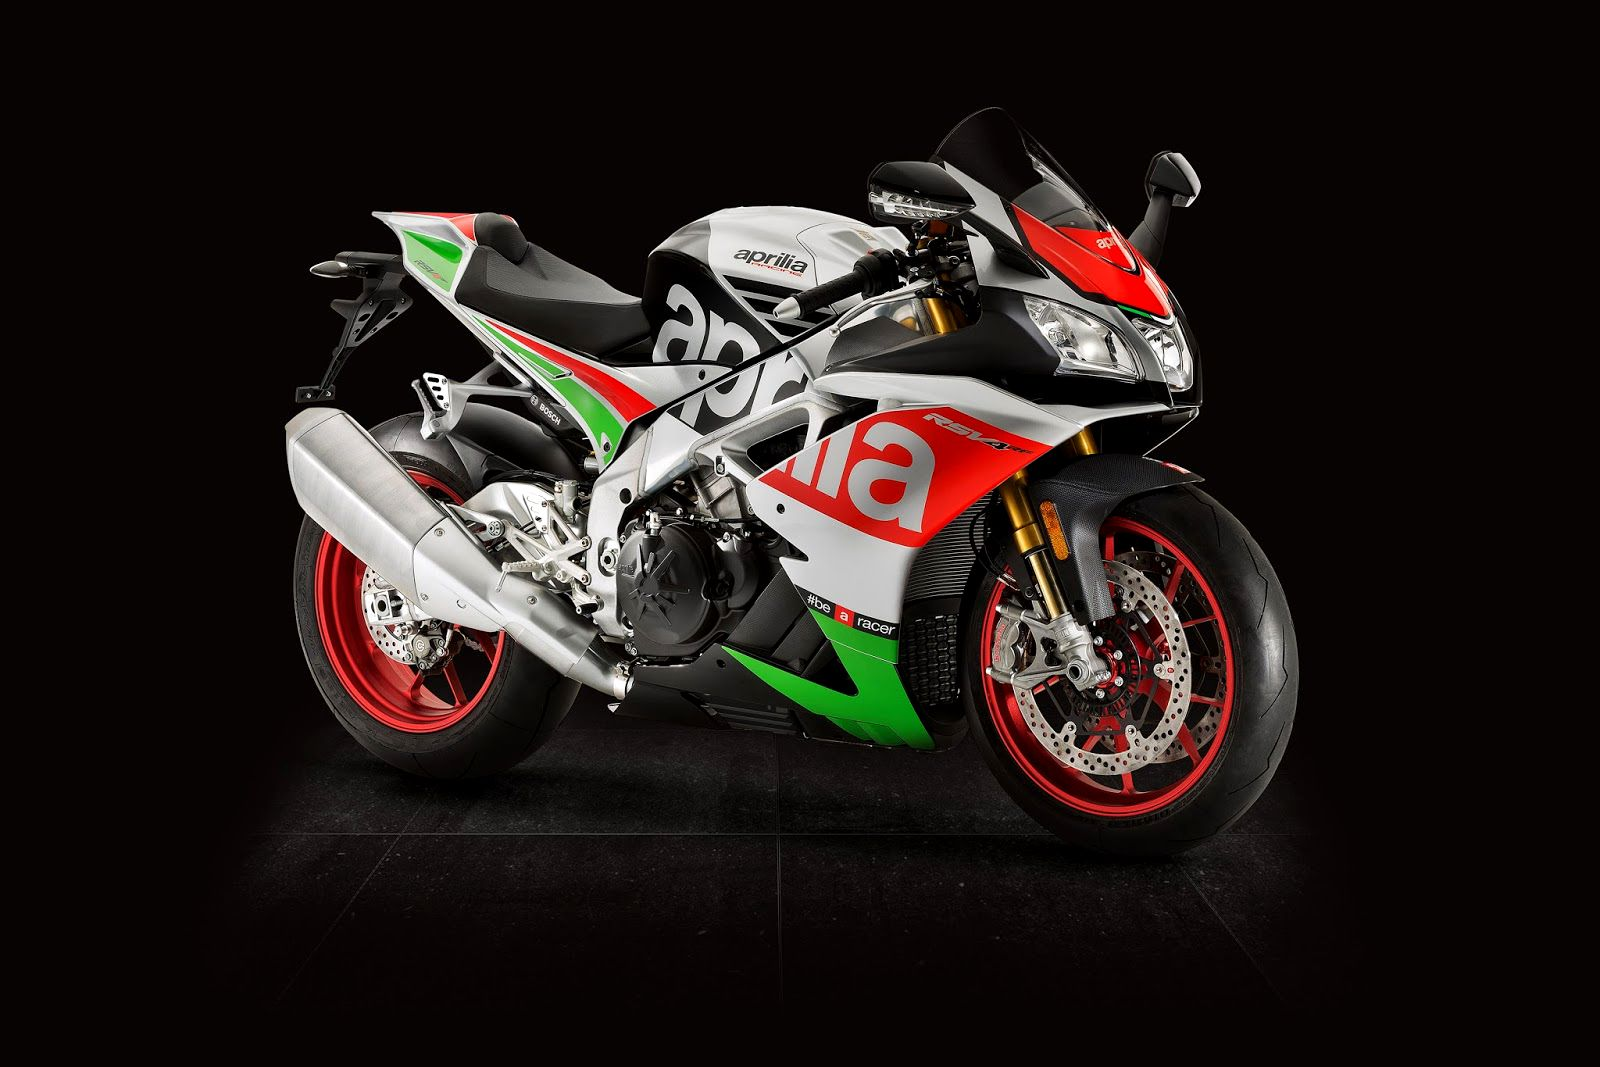 Aprilia RSV4 Wallpapers and Background Images   stmednet 1600x1067